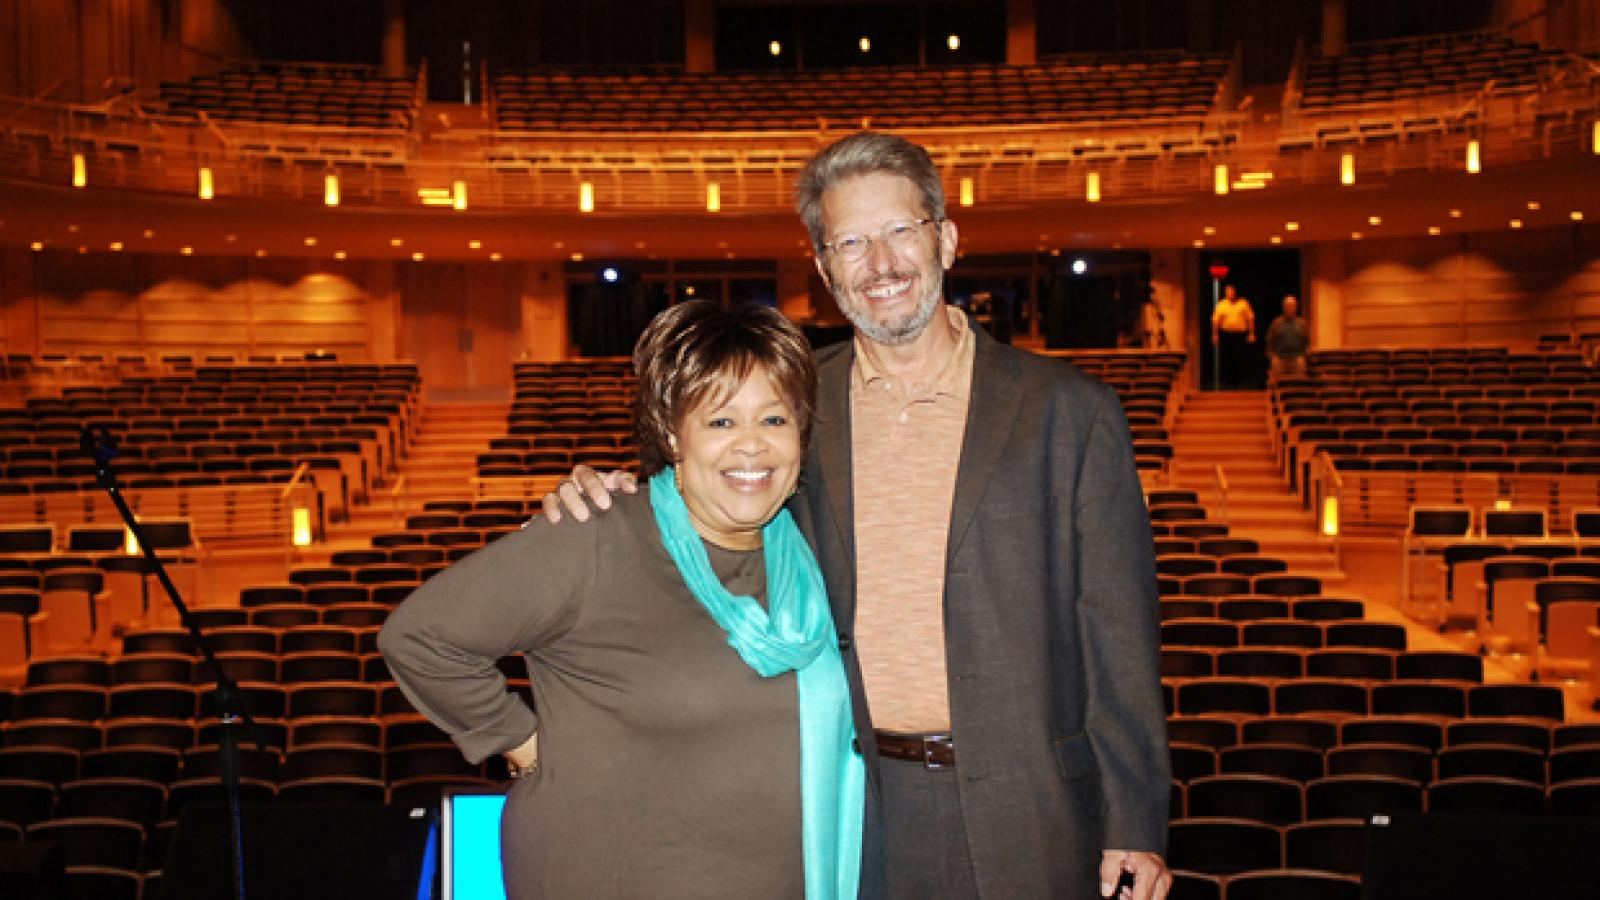 a woman in a brown shirt and a blue scarf stands on a stage with a man with a beard wearing a brown suit.